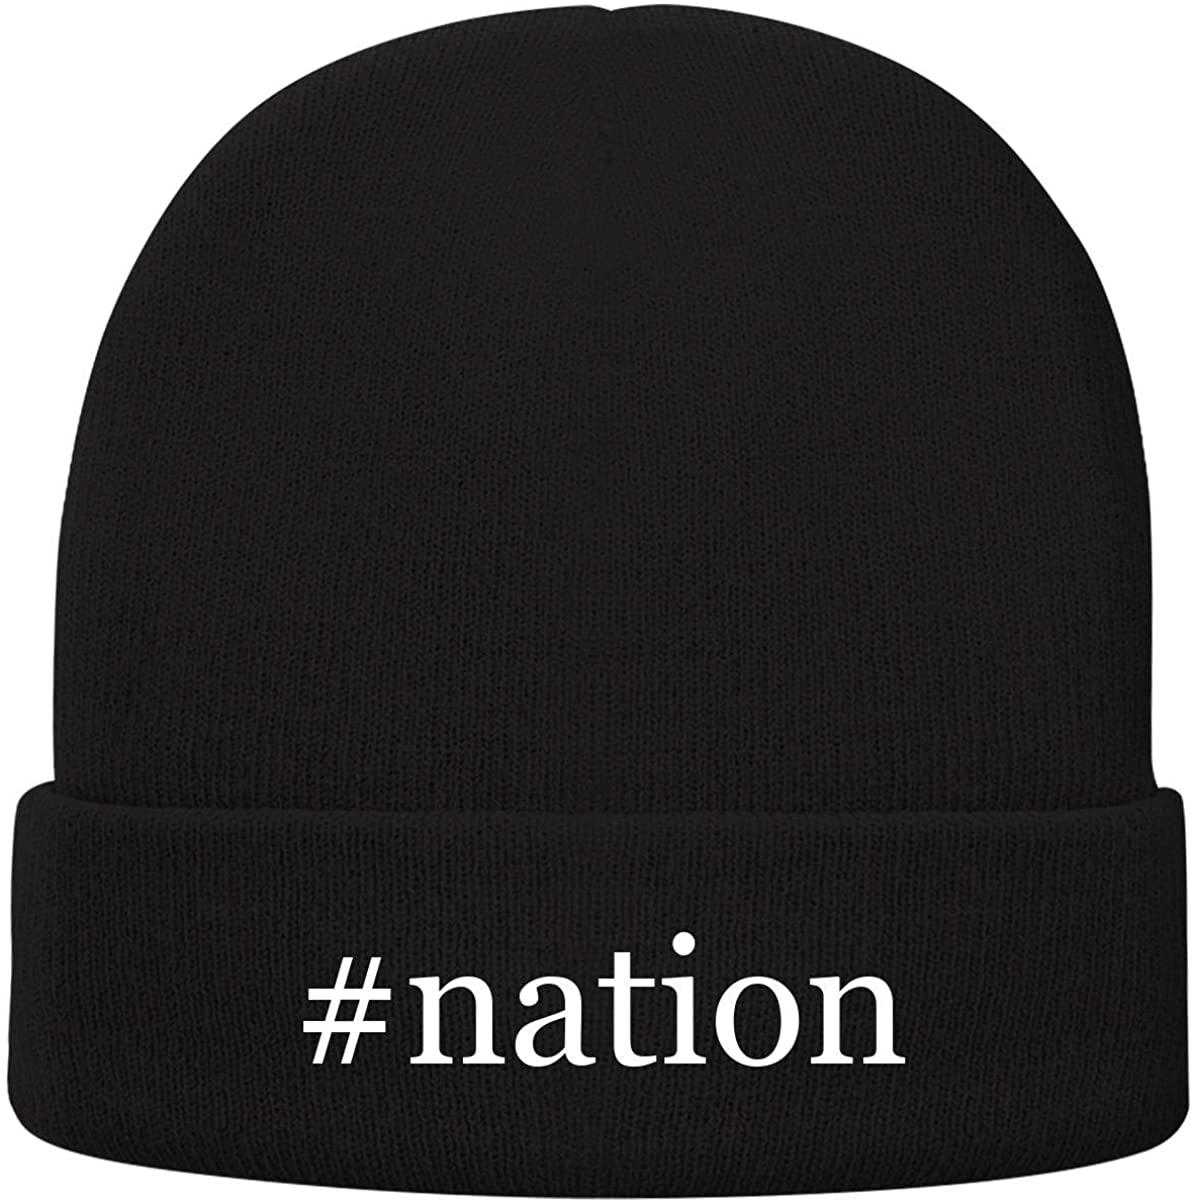 One Legging it Around #Nation - Soft Hashtag Adult Beanie Cap